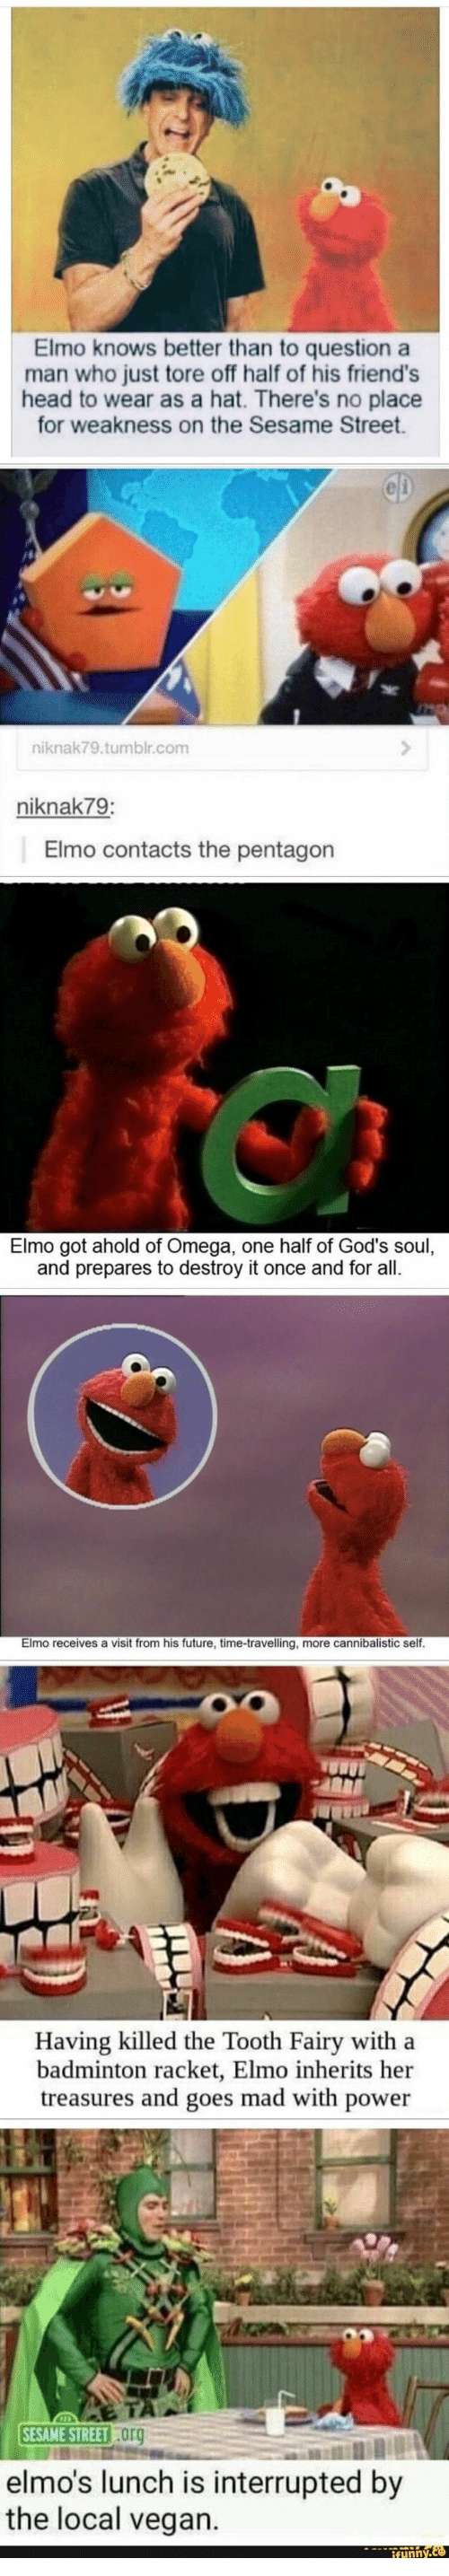 Interrupted: Elmo knows better than to question a  man who just tore off half of his friend's  head to wear as a hat. There's no place  for weakness on the Sesame Street  CD  niknak79.tumblr.com  niknak79:  Elmo contacts the pentagon  Elmo got ahold of Omega, one half of God's soul,  and prepares to destroy it once and for all.  Elmo receives a visit from his future, time-travelling, more cannibalistic self.  Having killed the Tooth Fairy with a  badminton racket, Elmo inherits her  treasures and goes mad with power  SESAME STREET Org  elmo's lunch is interrupted by  the local vegan.  ifynny.co